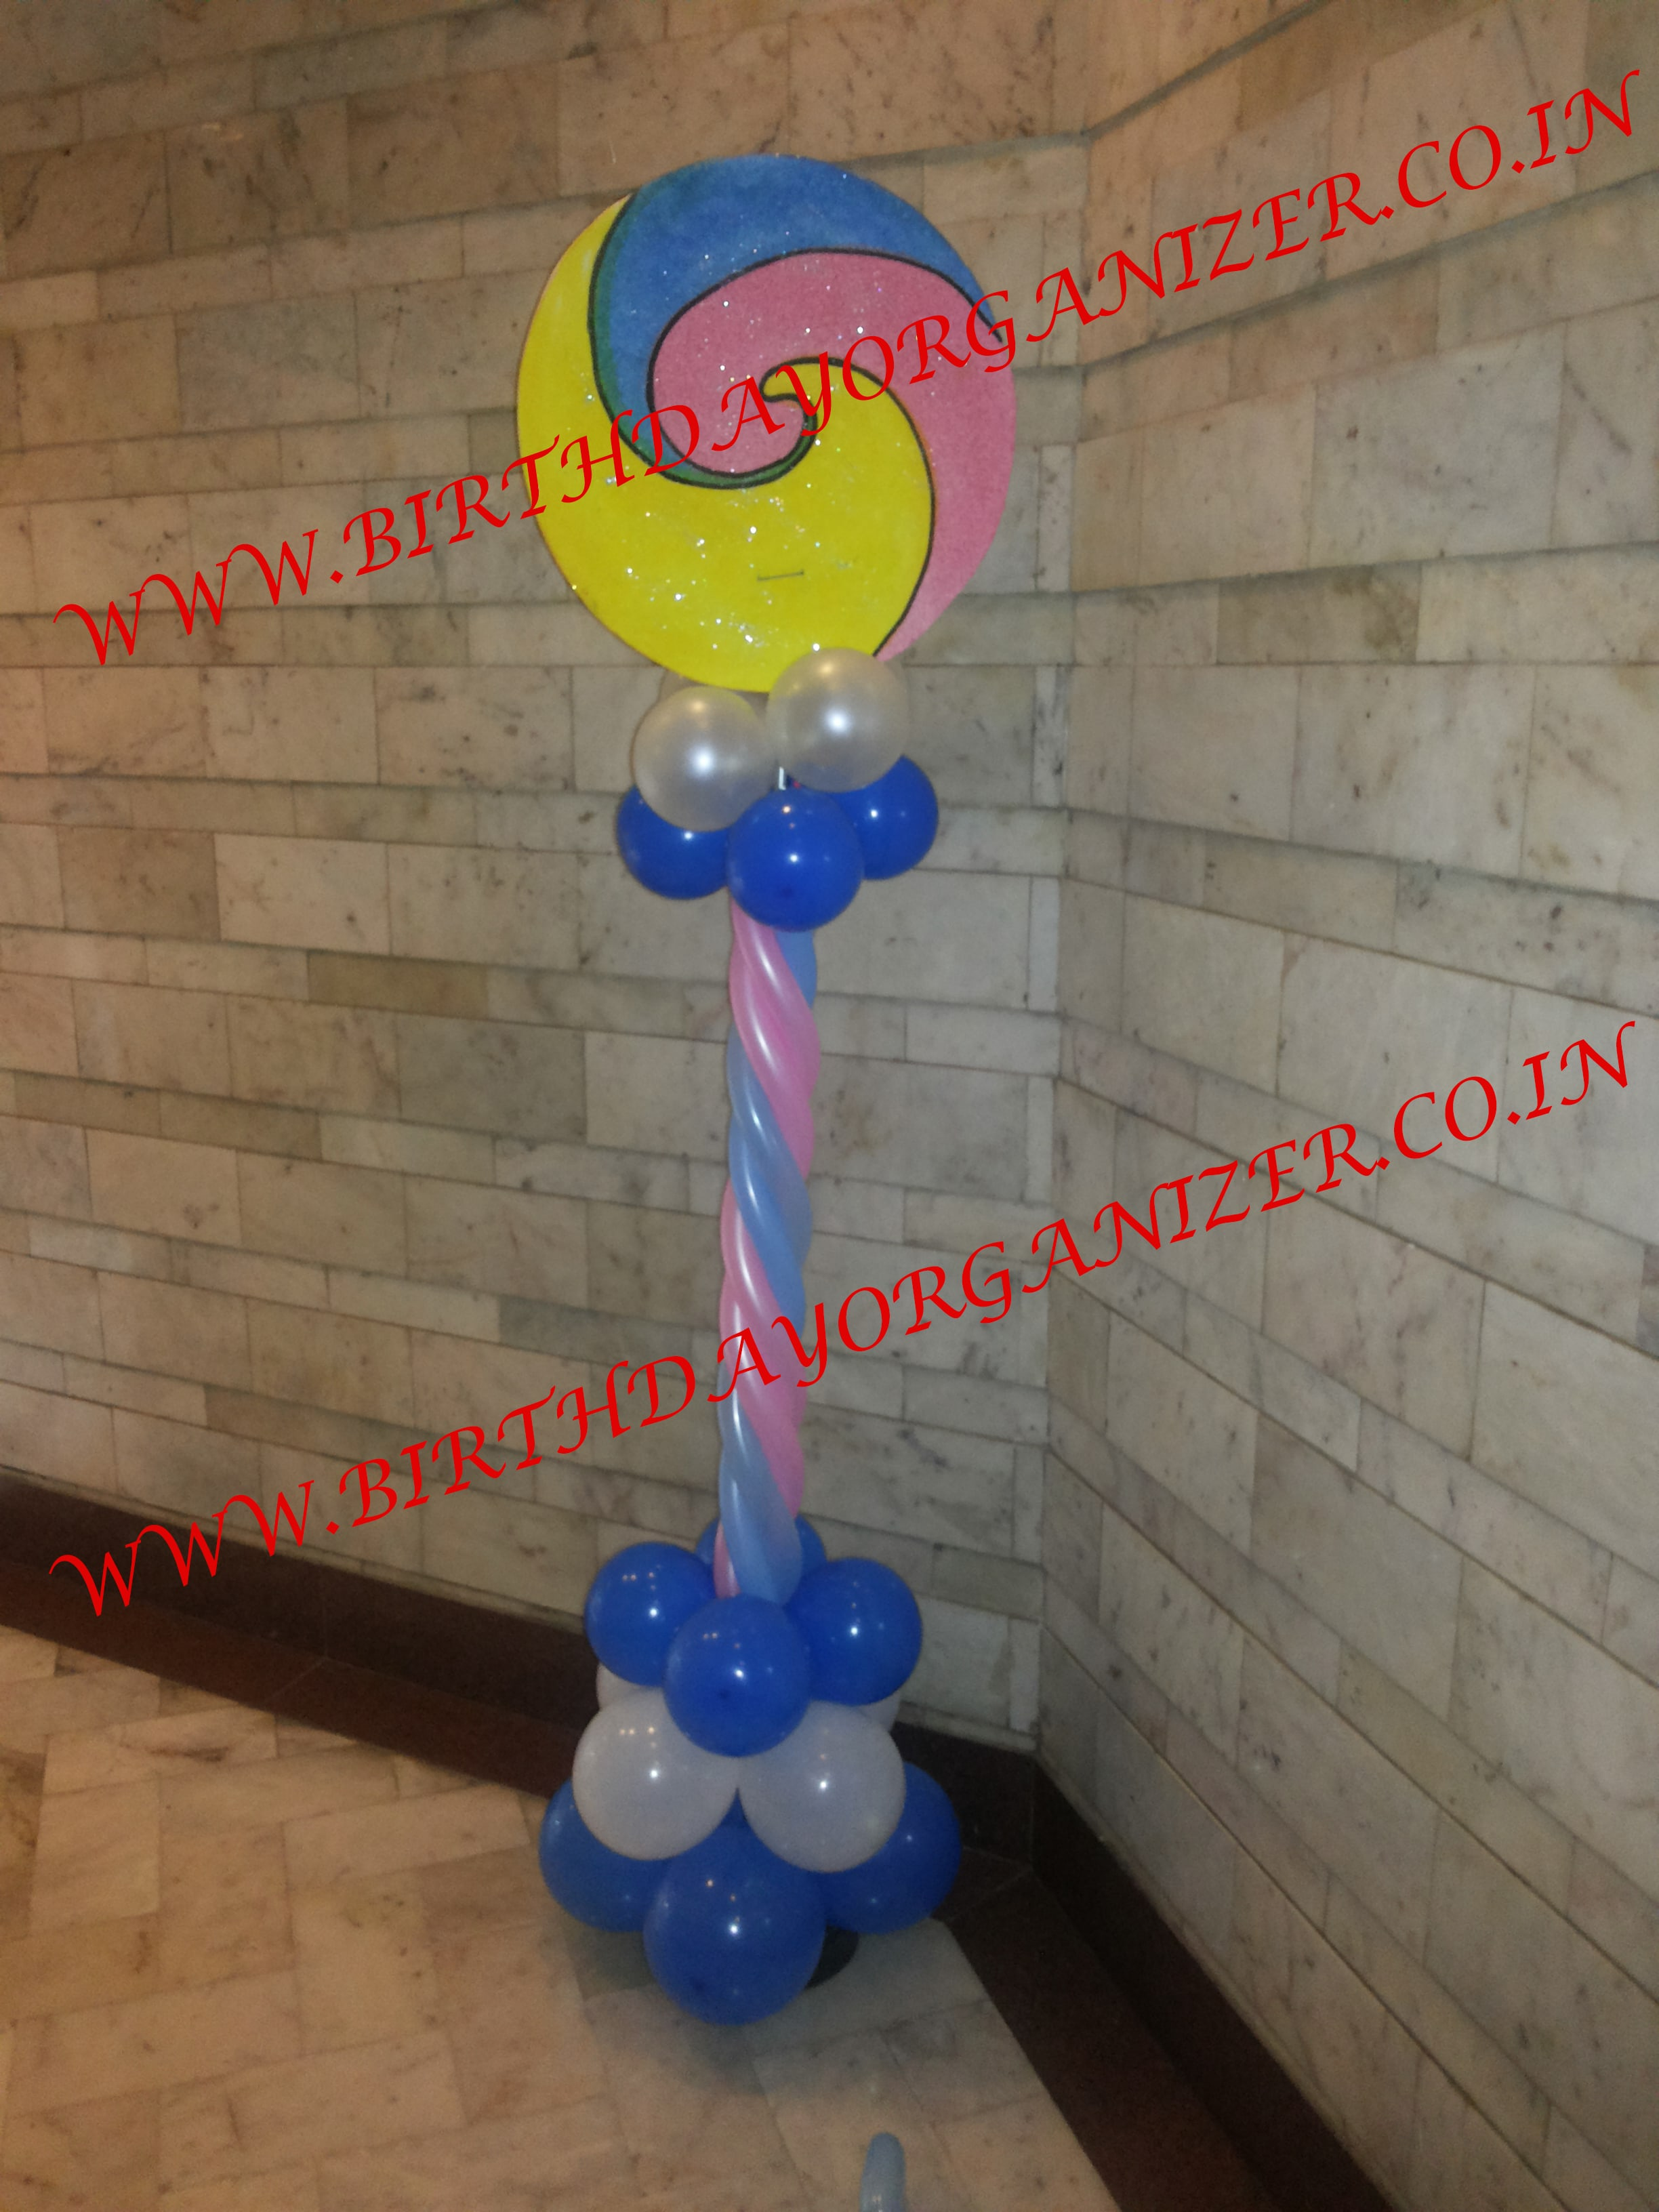 party planner noida, birthday party planner noida ncr, party planner gurgaon, birthday party planner delhi ncr